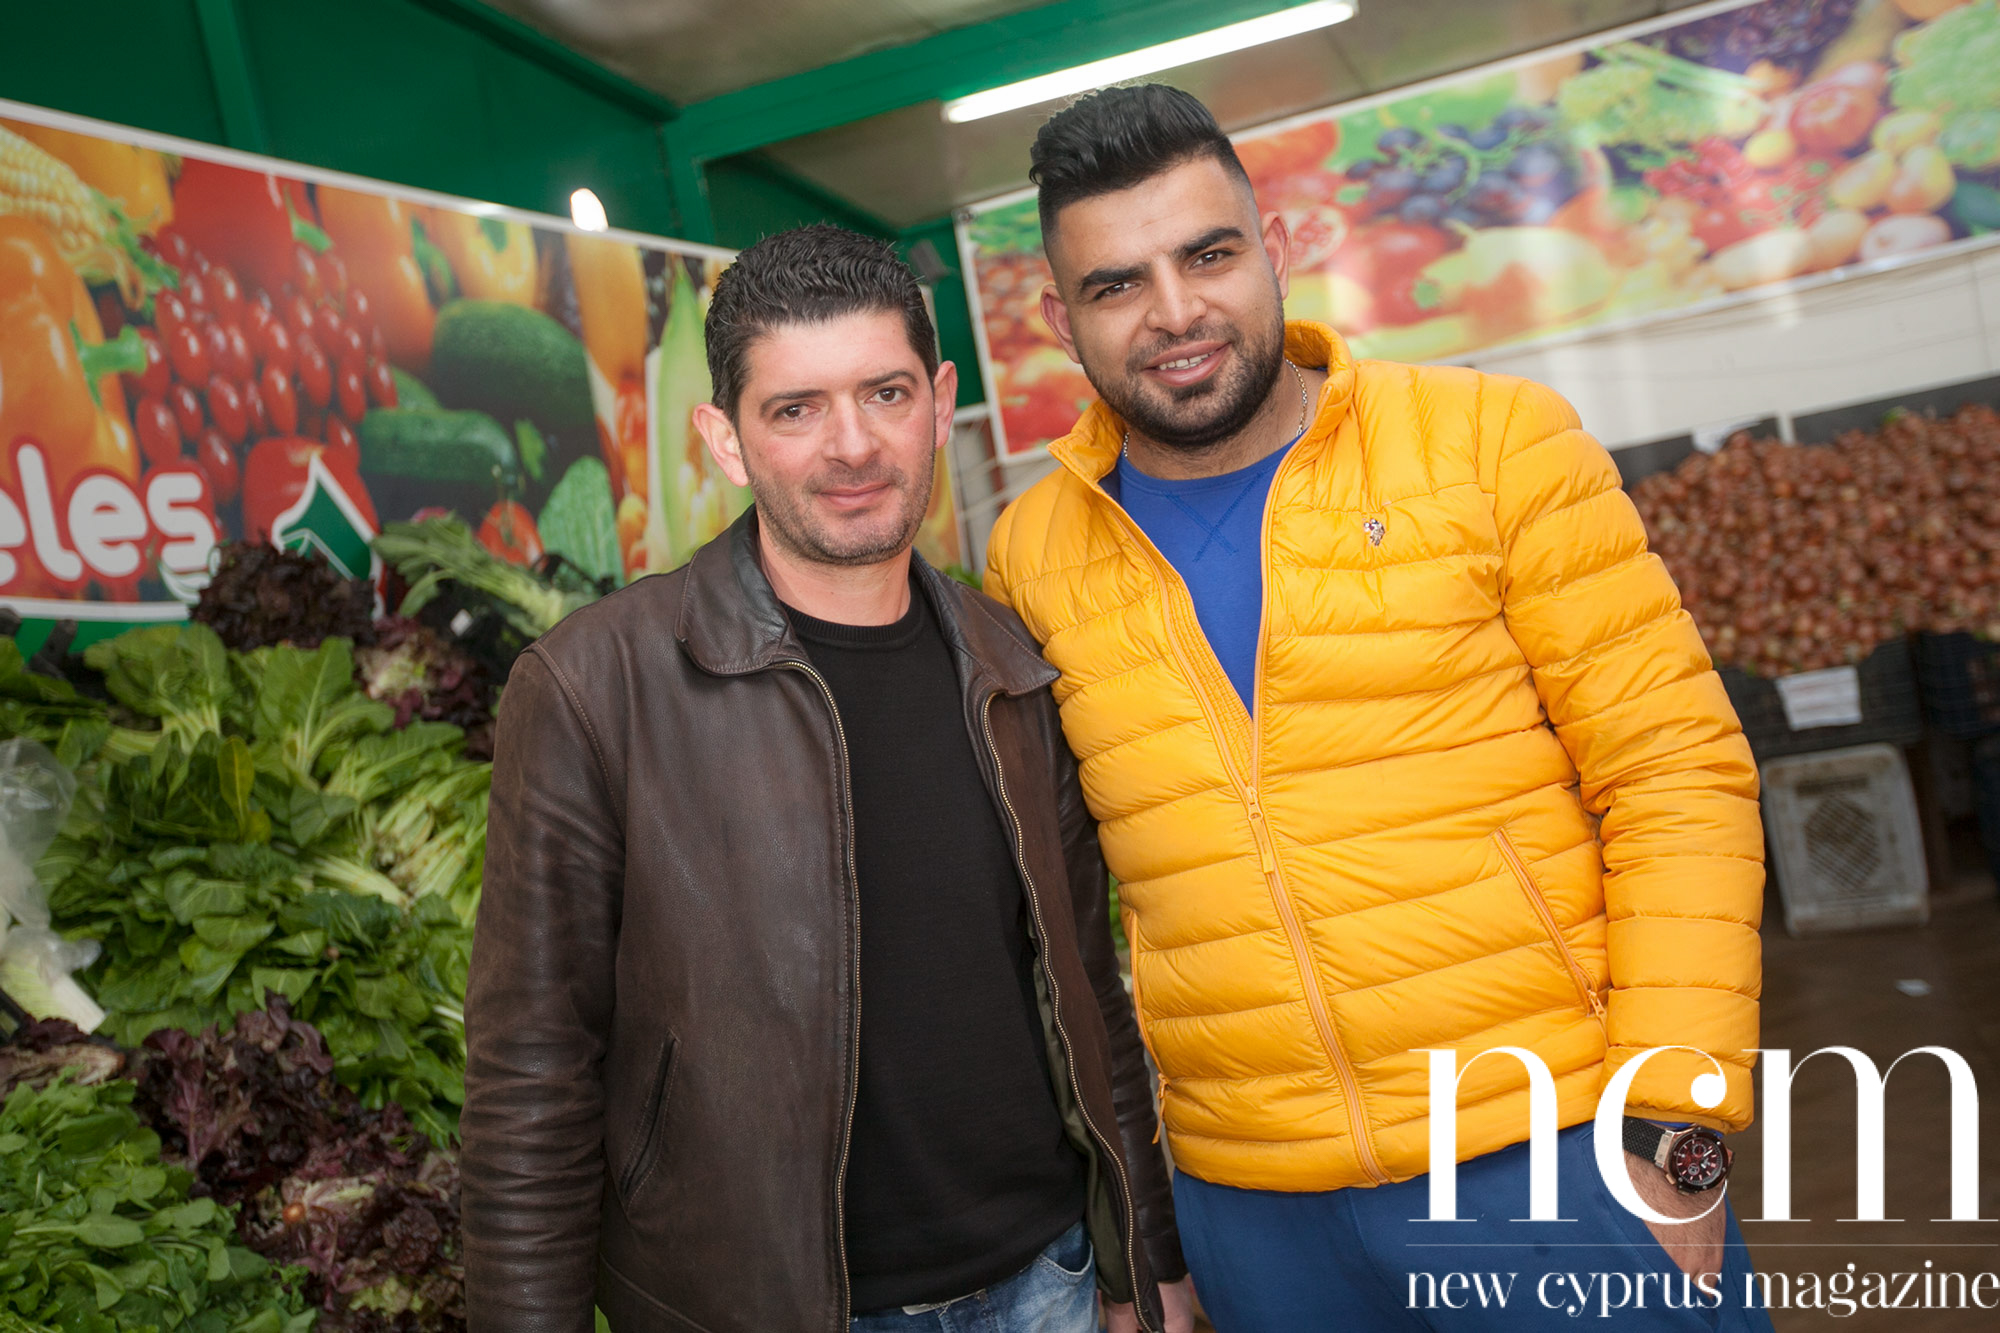 Owner and Kemal at Fruit veg Ya Beles in North Cyprus